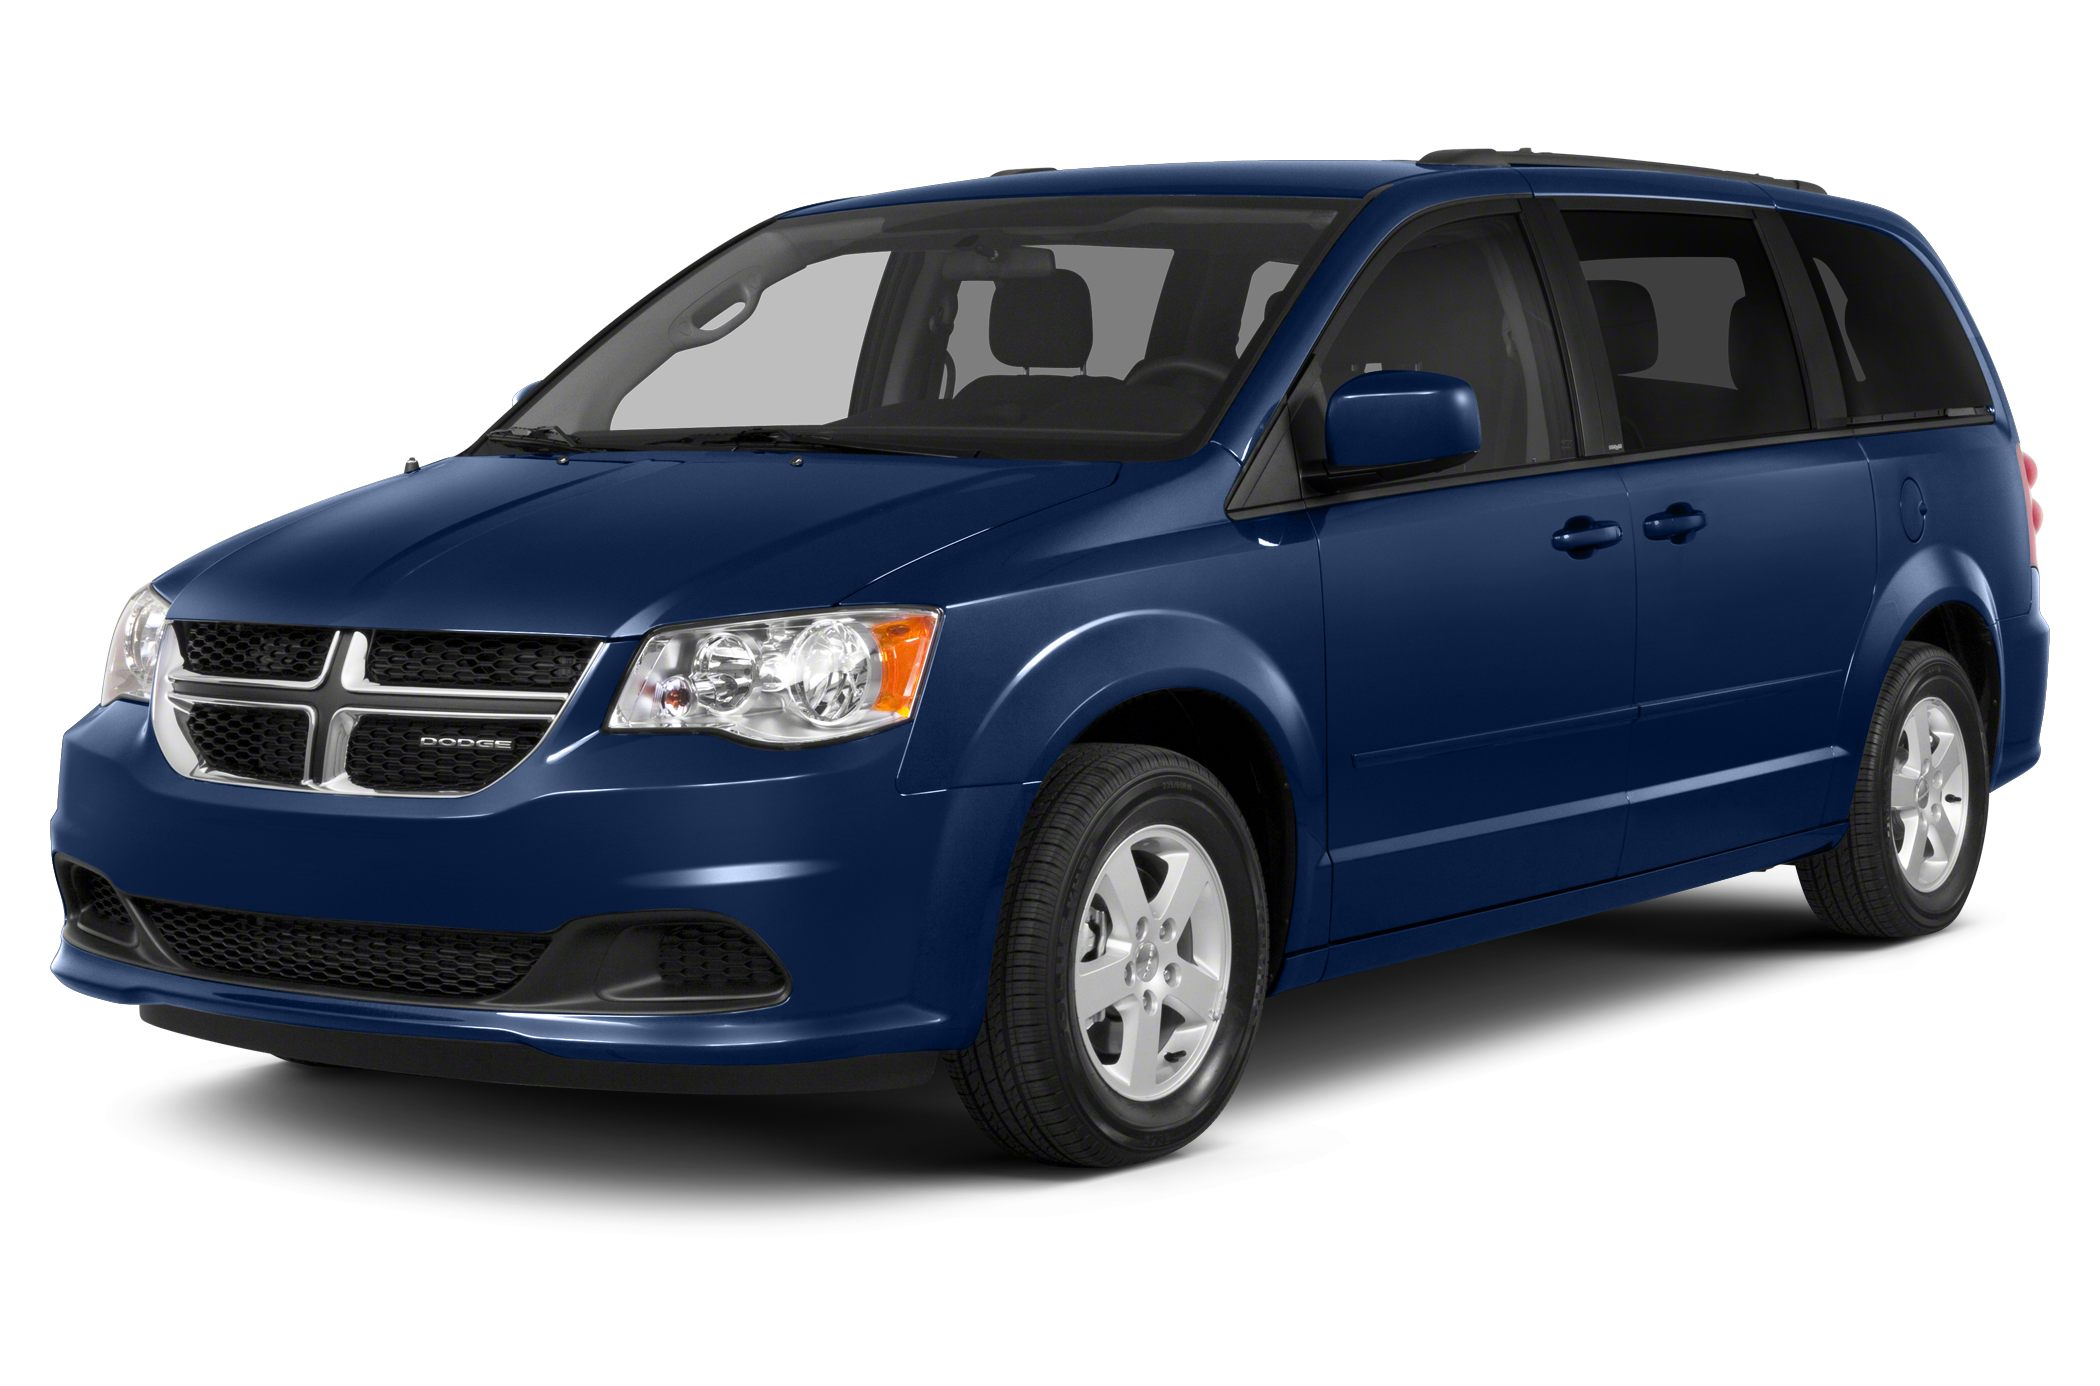 2013 Dodge Grand Caravan SXT Minivan for sale in Edenton for $15,000 with 75,119 miles.